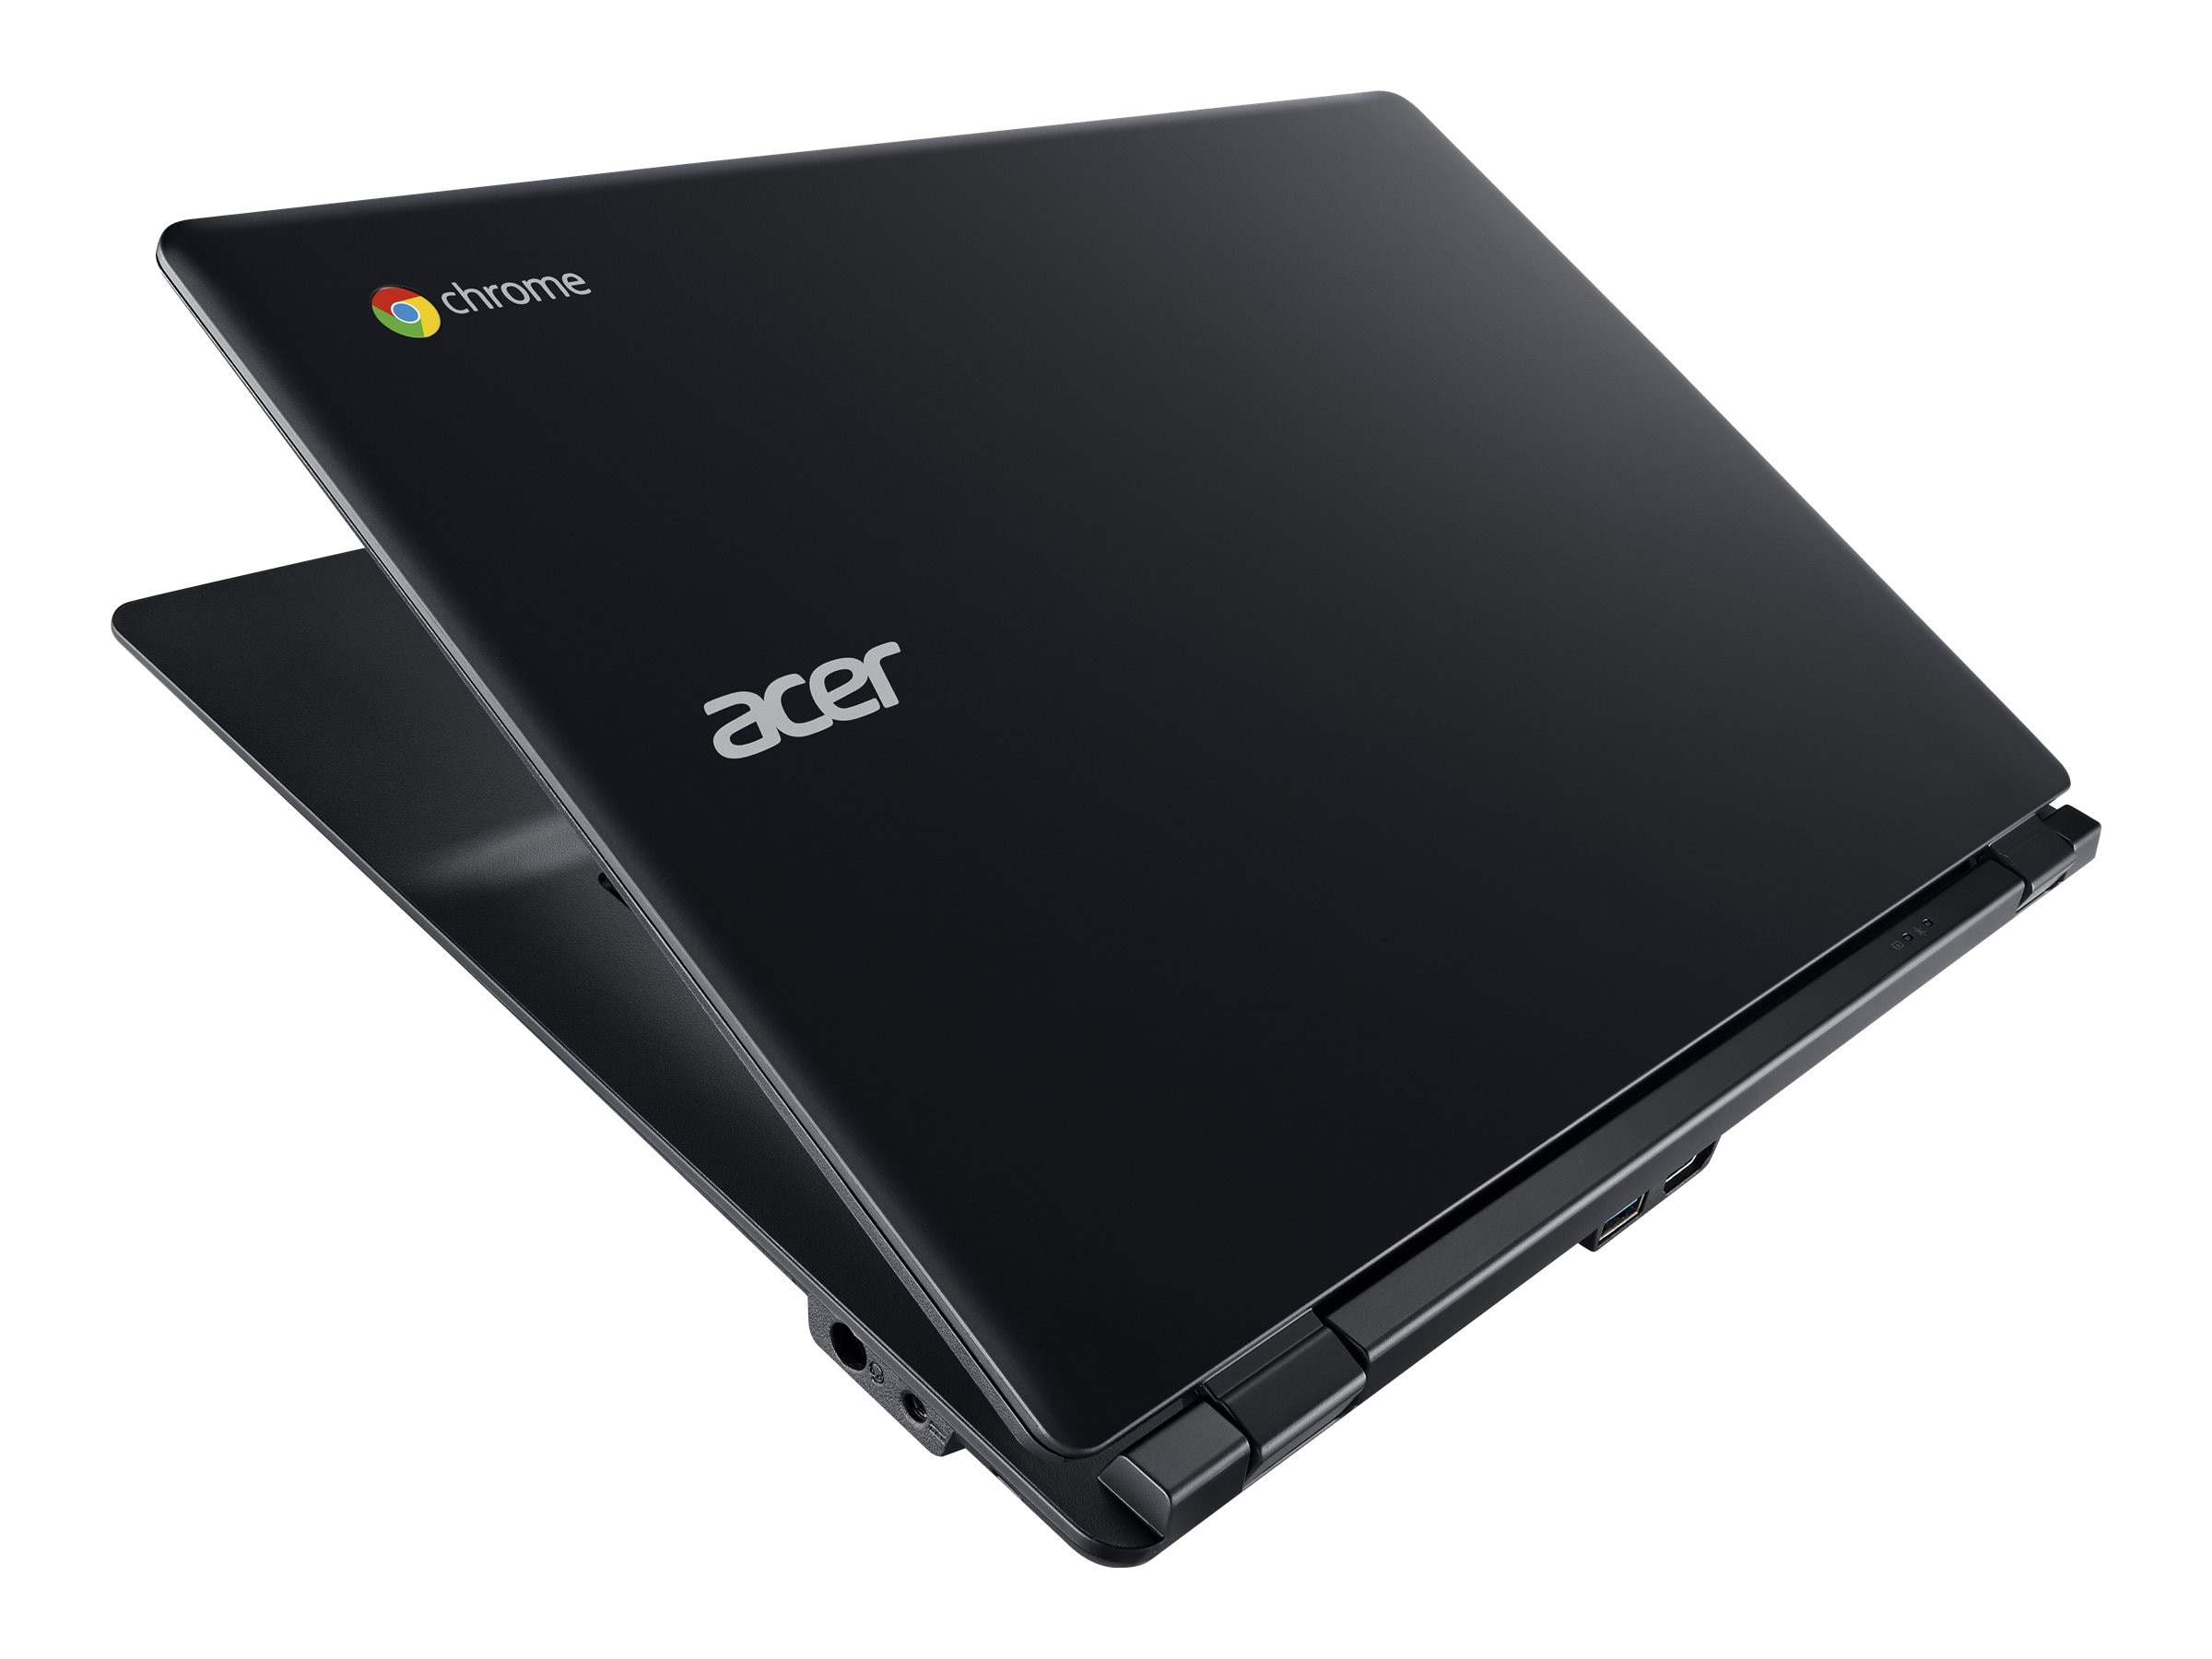 Acer Chromebook 13 C810 Tegra K1 A15 2.1GHz 4GB 32GB 13.3 Chrome, NX.G14AA.003